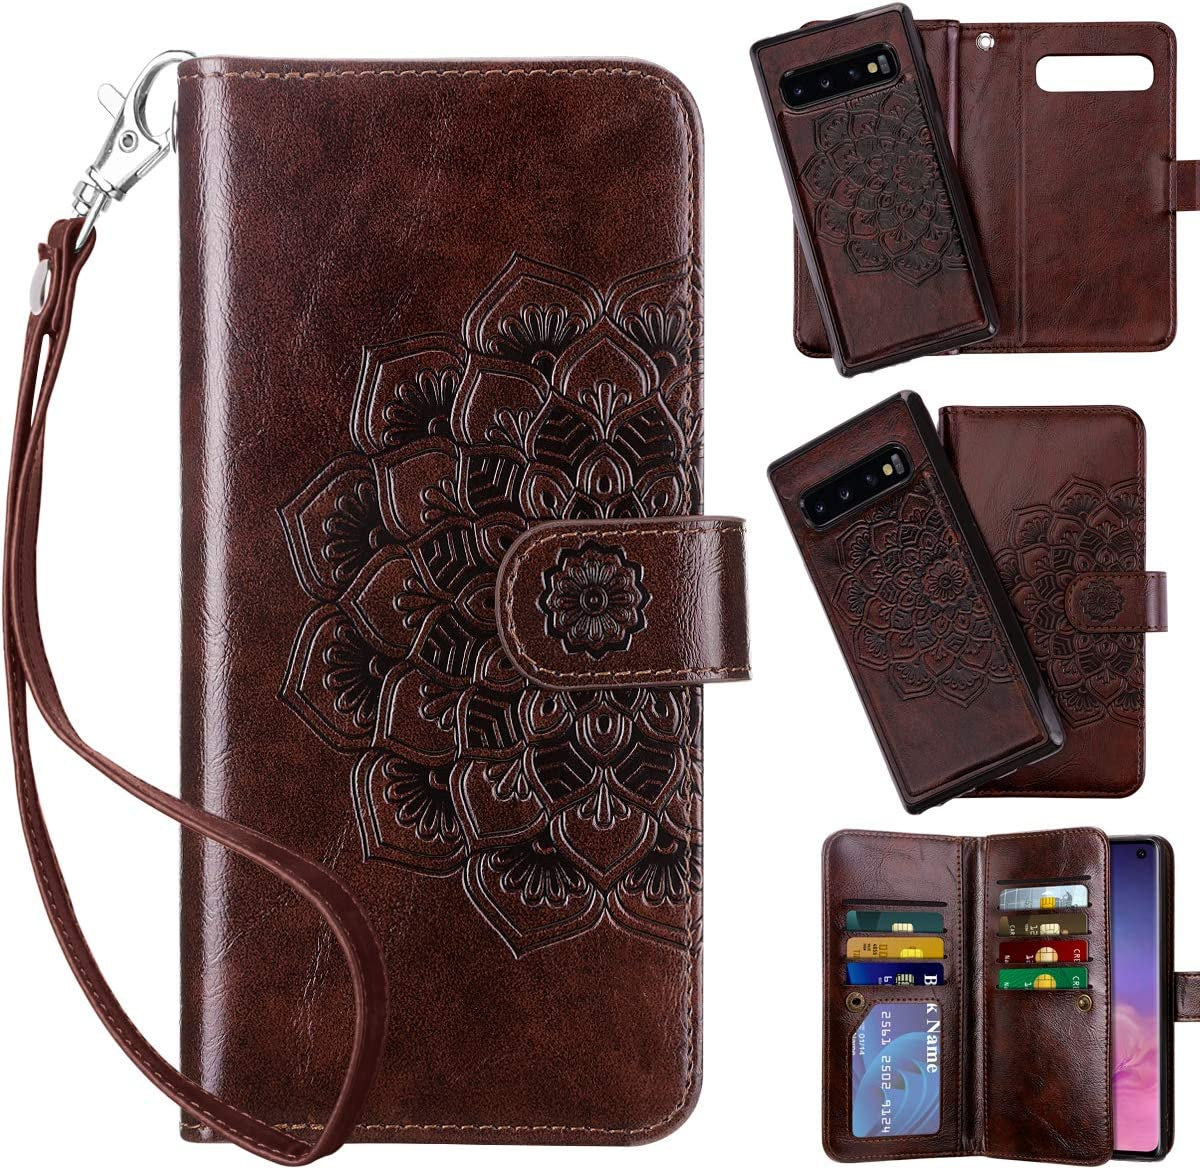 Vofolen 2-in-1 Case for Galaxy S10 Case Wallet Credit Card Holder ID Slot Detachable Strap Hybrid Protective Slim Hard Shell Magnetic PU Leather Folio Flip Cover Case for Galaxy S10 Mandala Brown